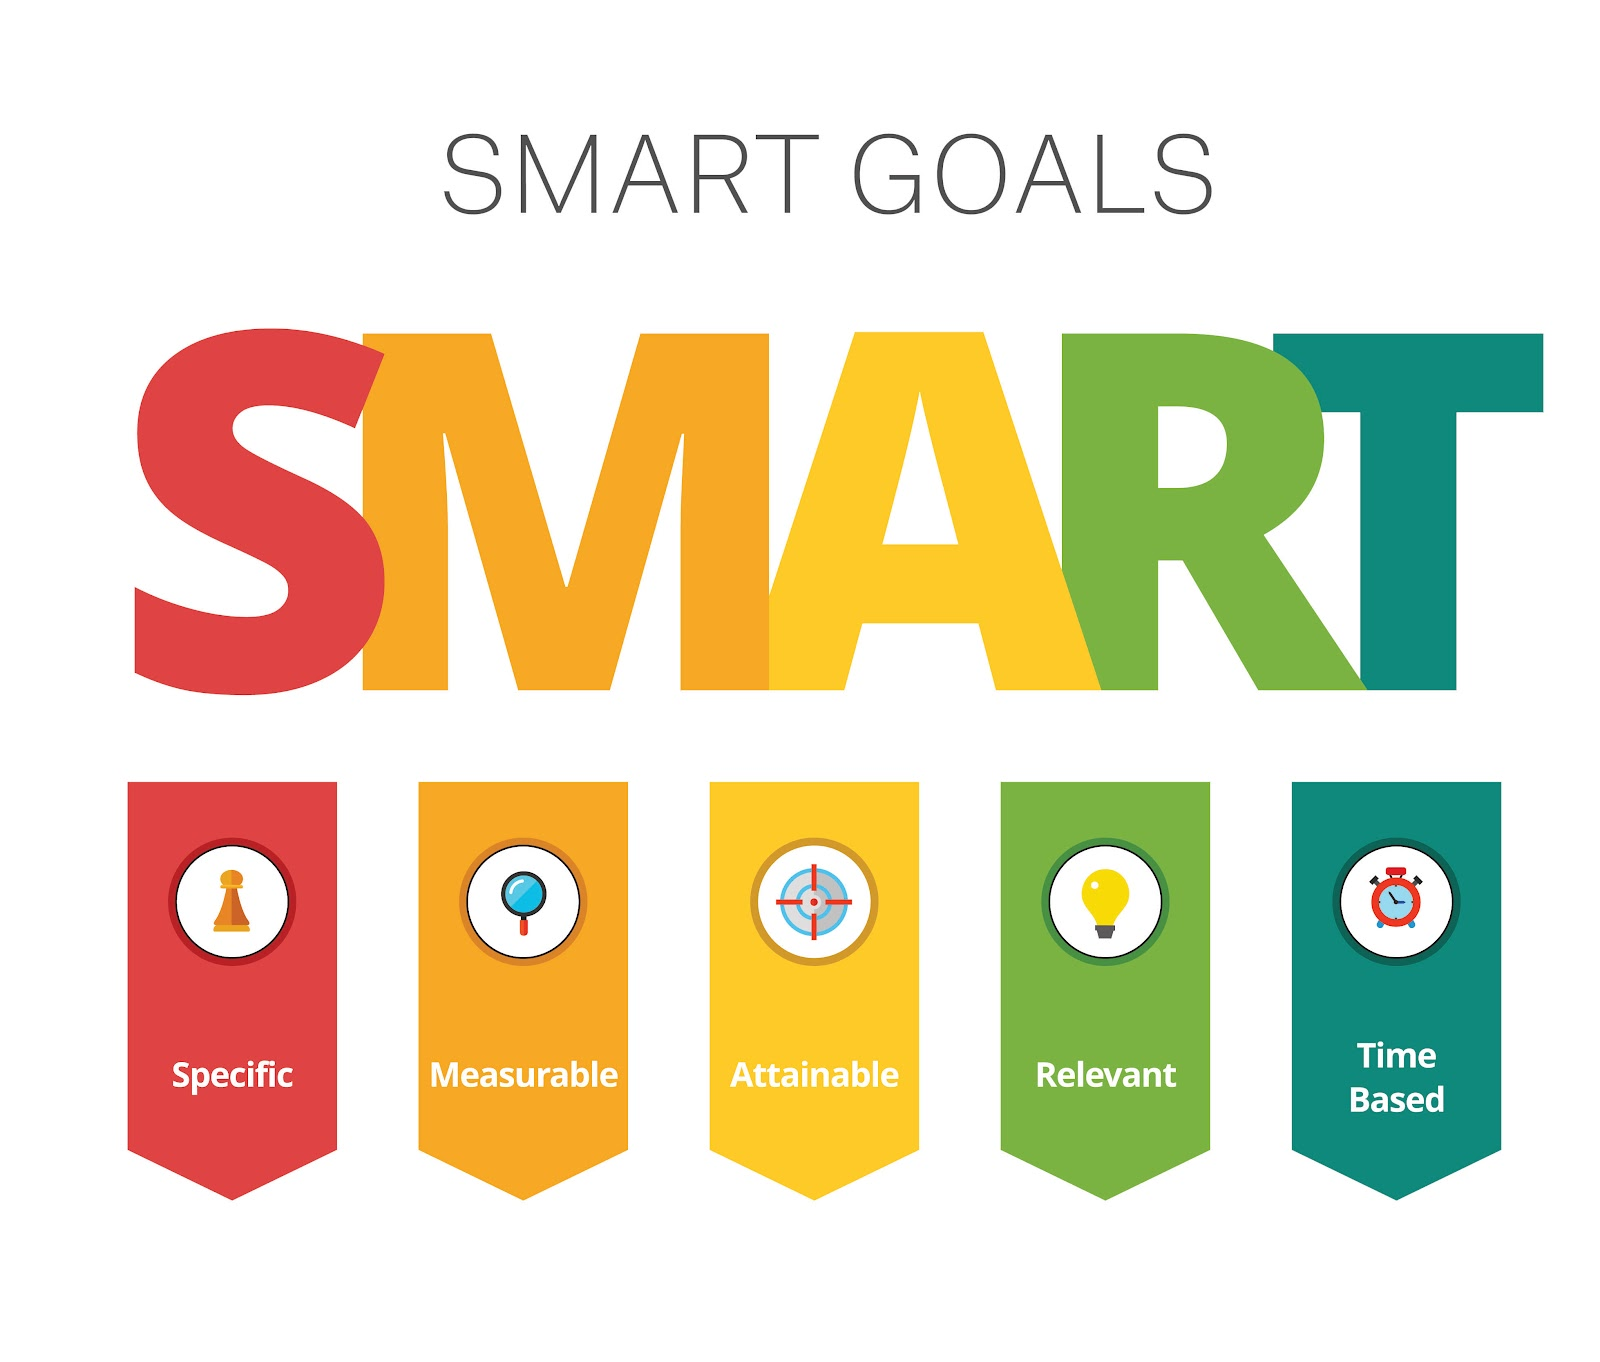 Smart Goals: Specific, Measurable, Attainable, Relevant, Time Based